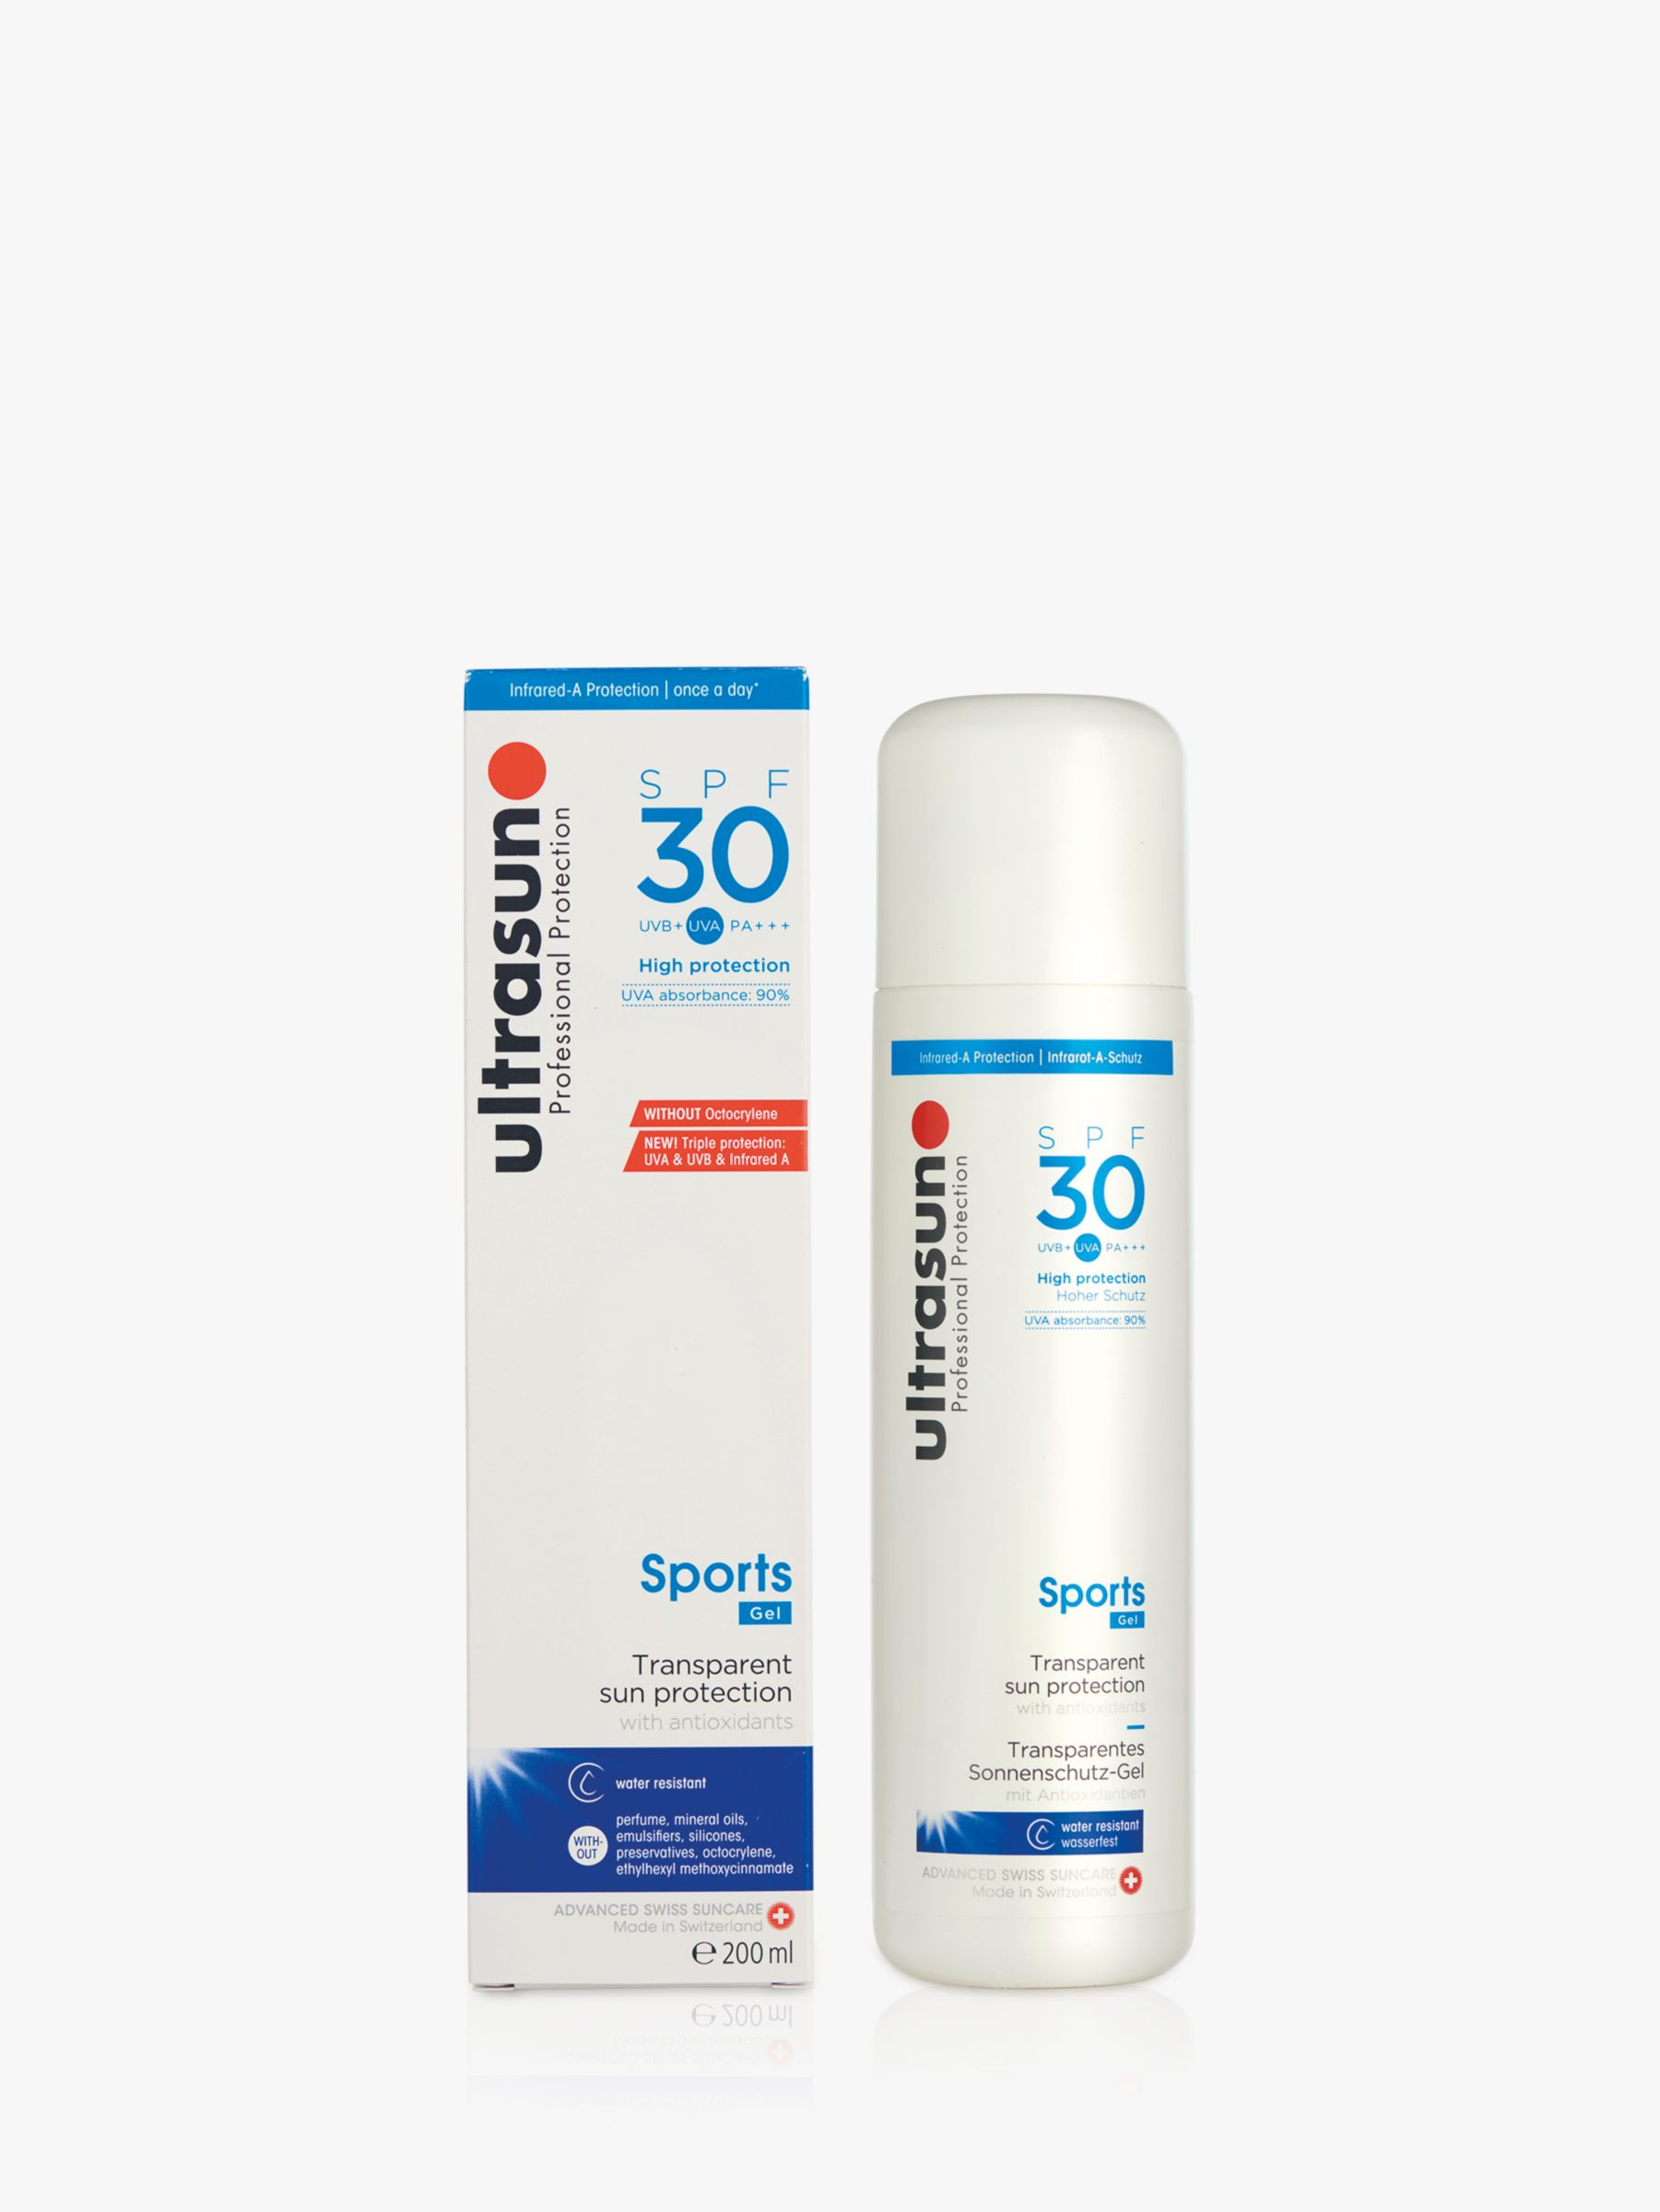 Ultrasun Ultrasun SPF 30 Sports Gel, 200ml